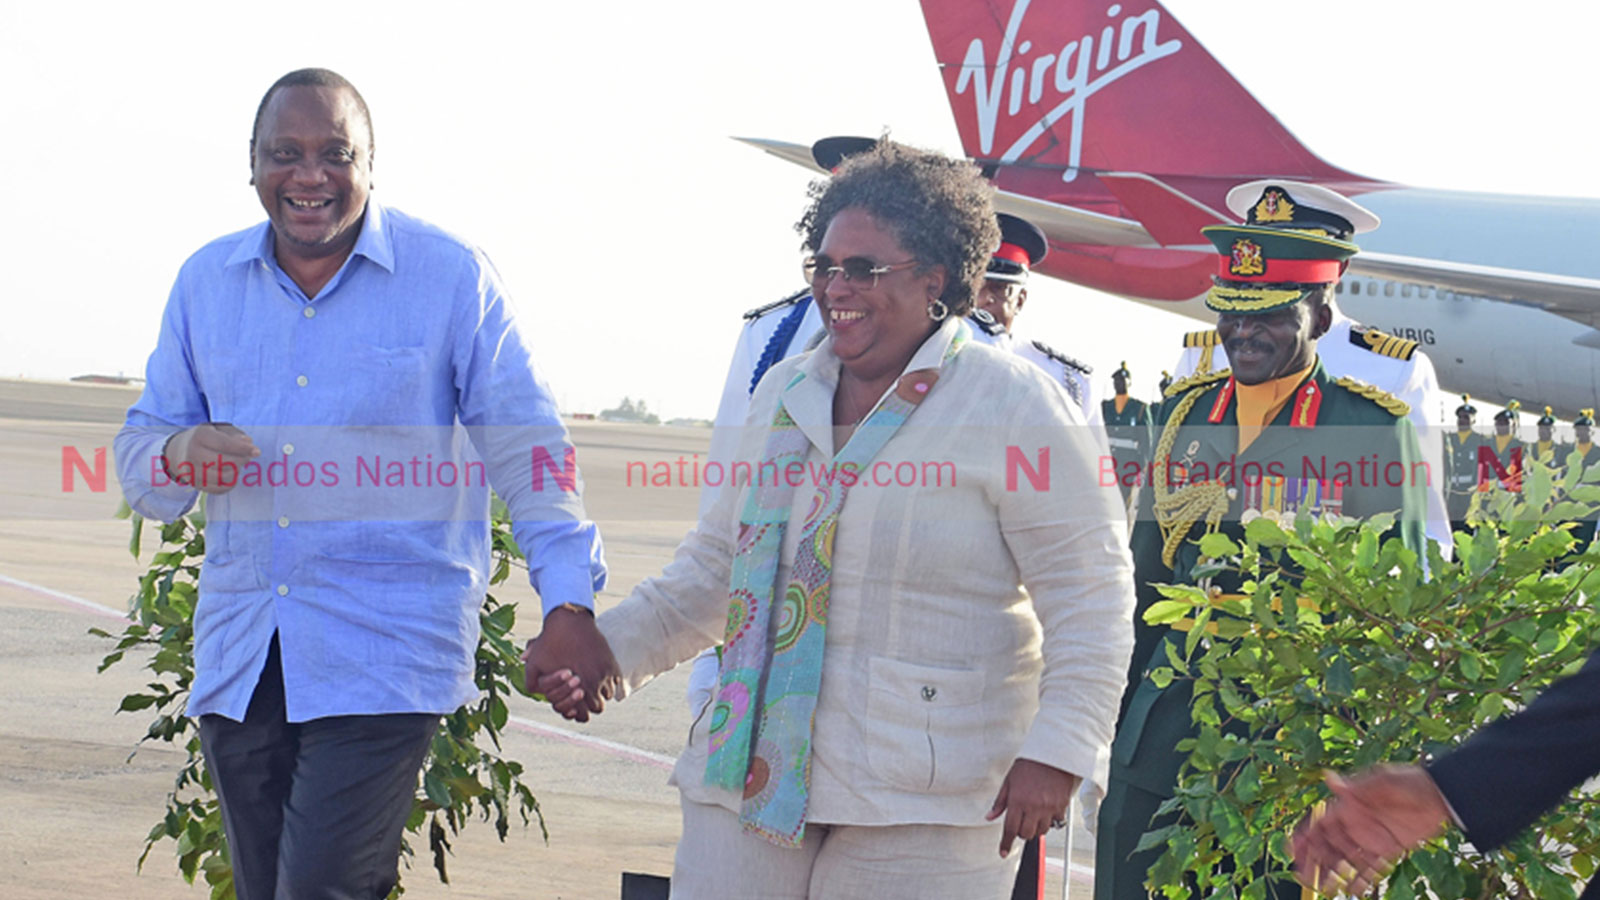 Prime Minister Mia Mottley and Kenyan president Uhuru Kenyatta holding hands before he left the island after a three-day official visit in 2019.